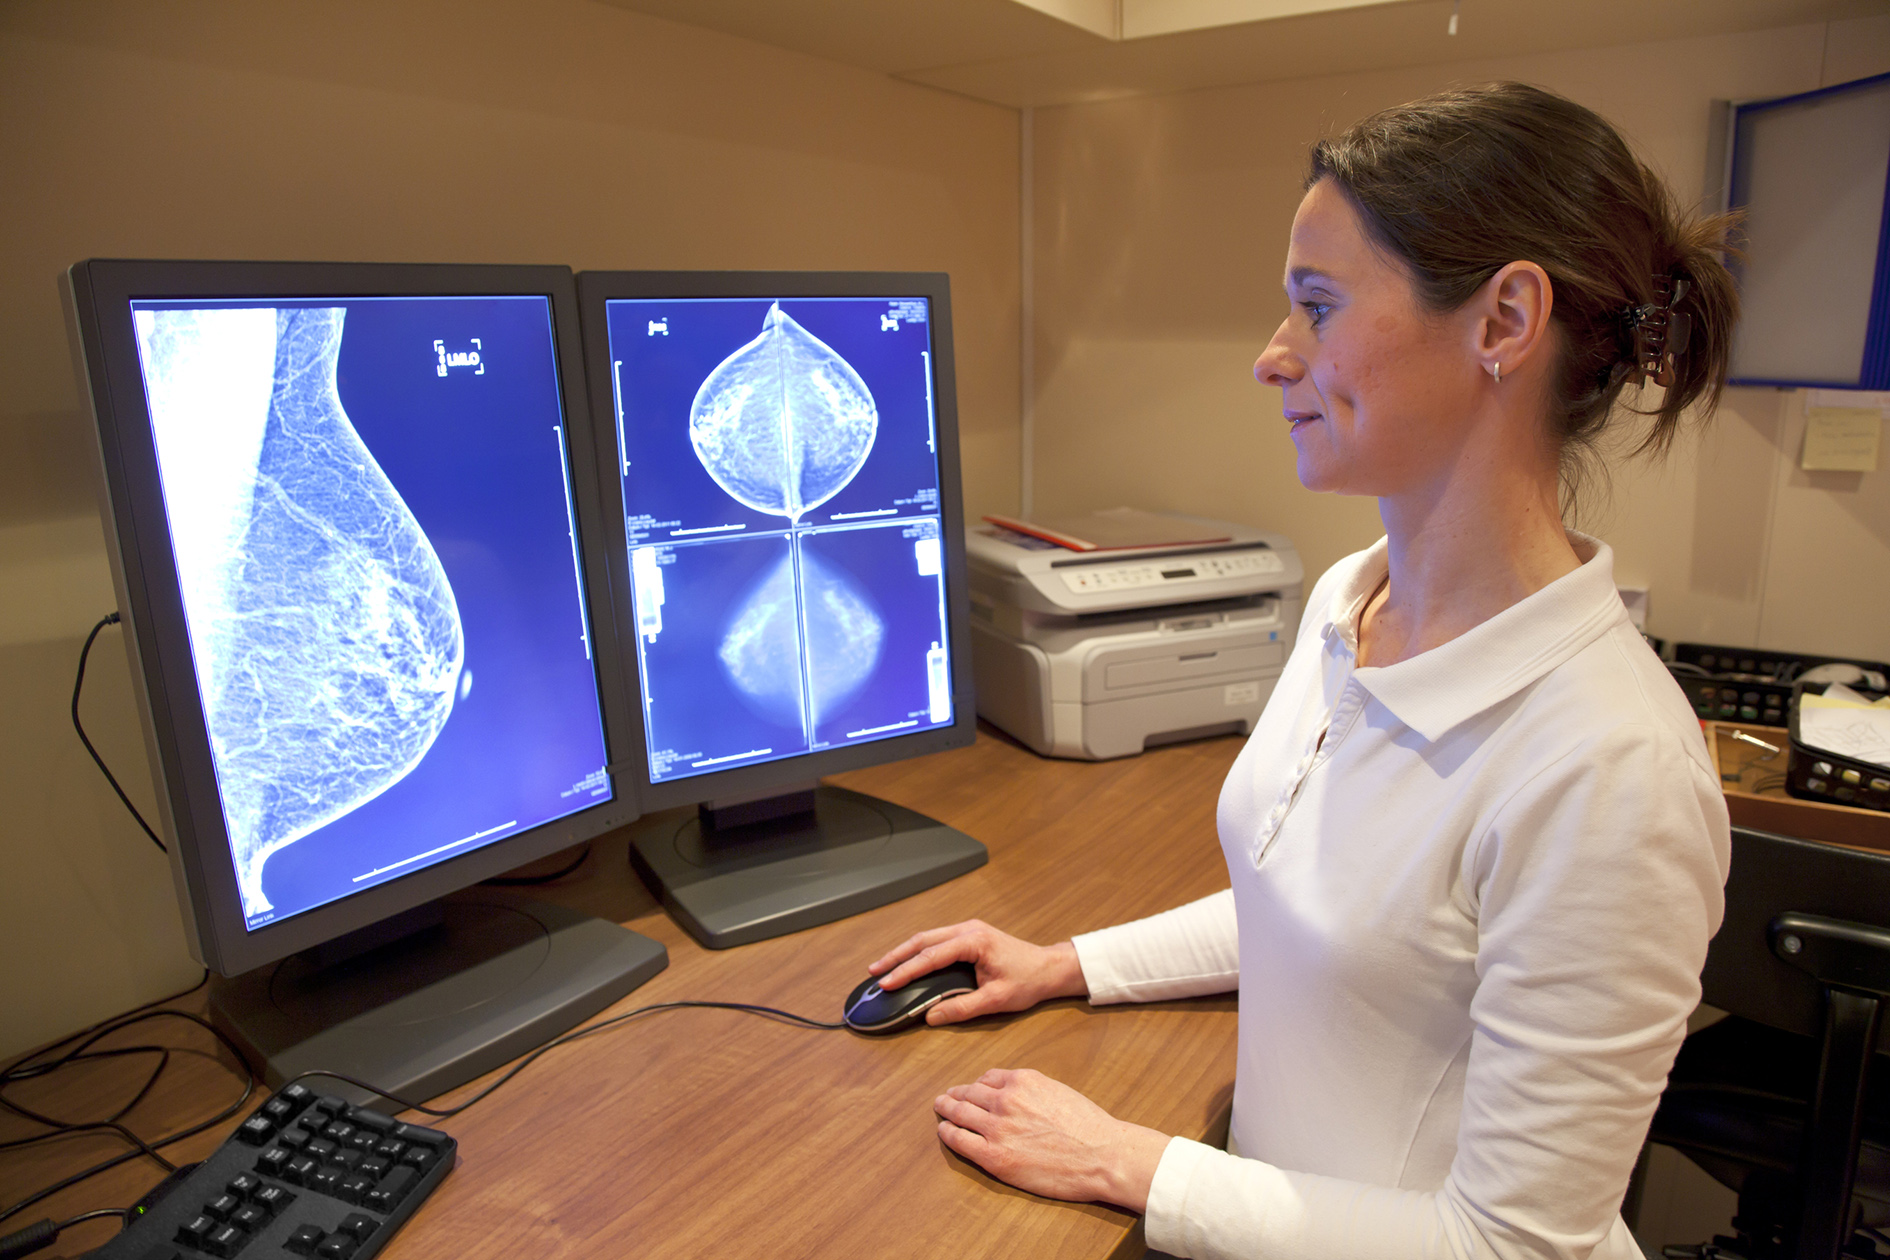 MacroGenics looks to future with breast cancer drug margetuximab